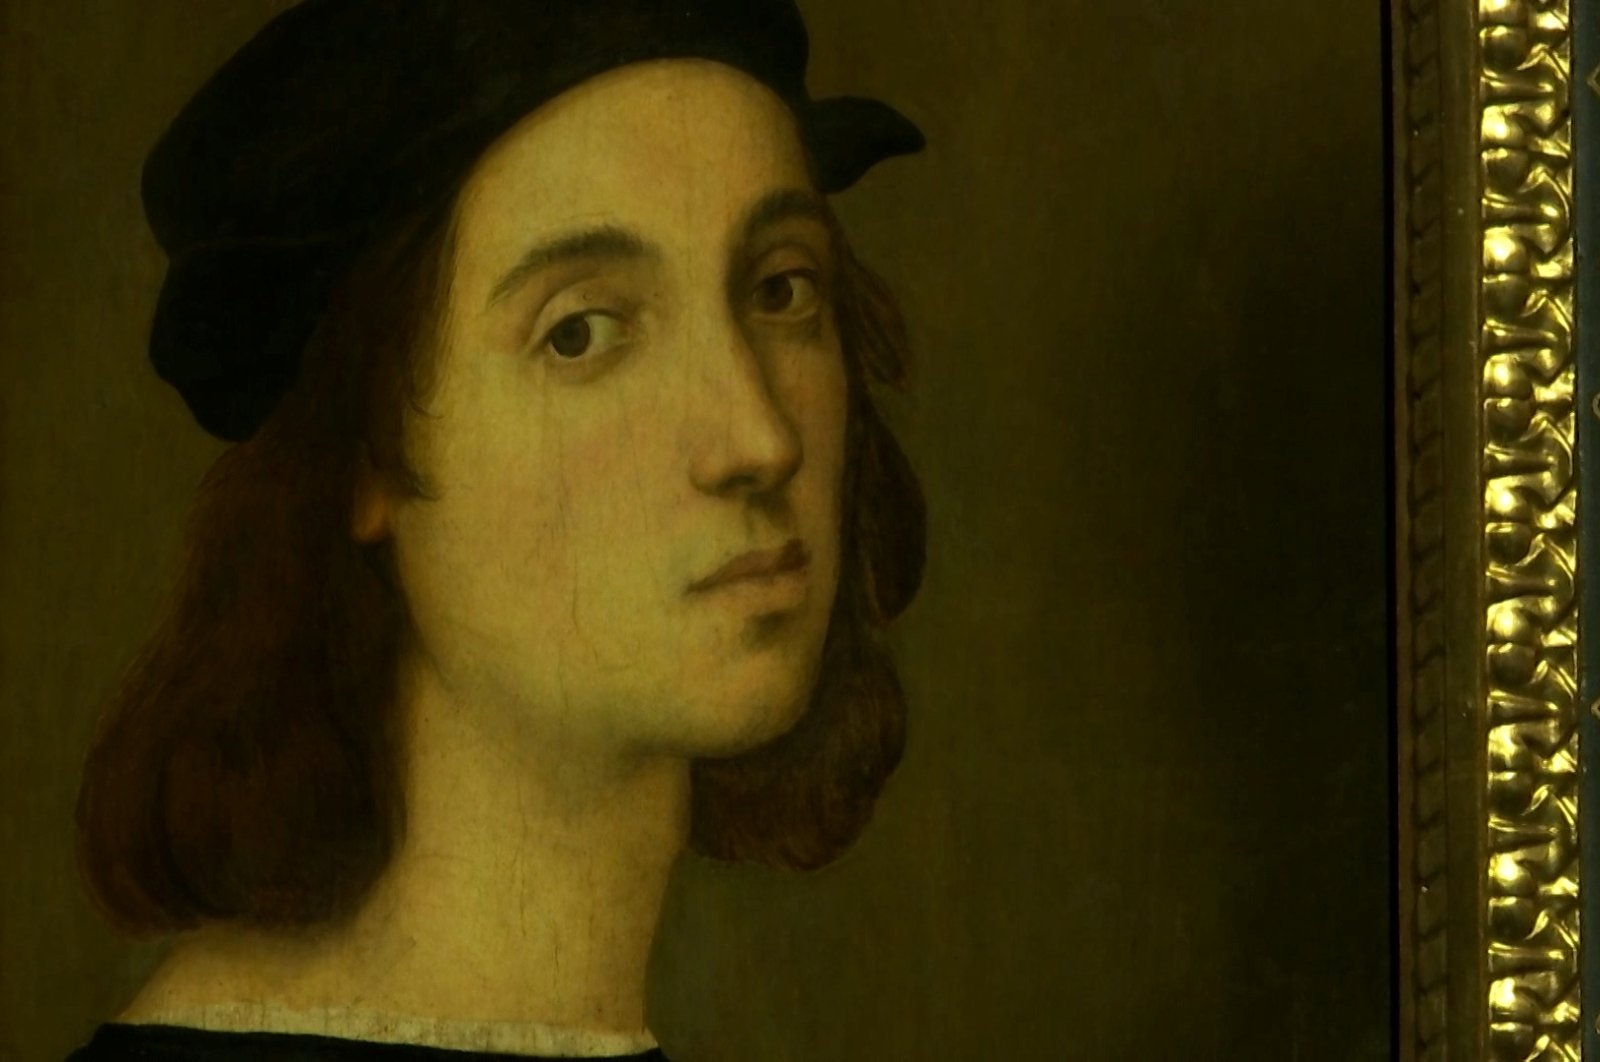 A self portrait by Renaissance master Raphael is seen during the unveiling of a blockbuster exhibition commemorating the 500th anniversary of his death, in this screengrab taken from a video, at the Scuderie del Quirinale in Rome, Italy March 4, 2020. (Reuters Photo)